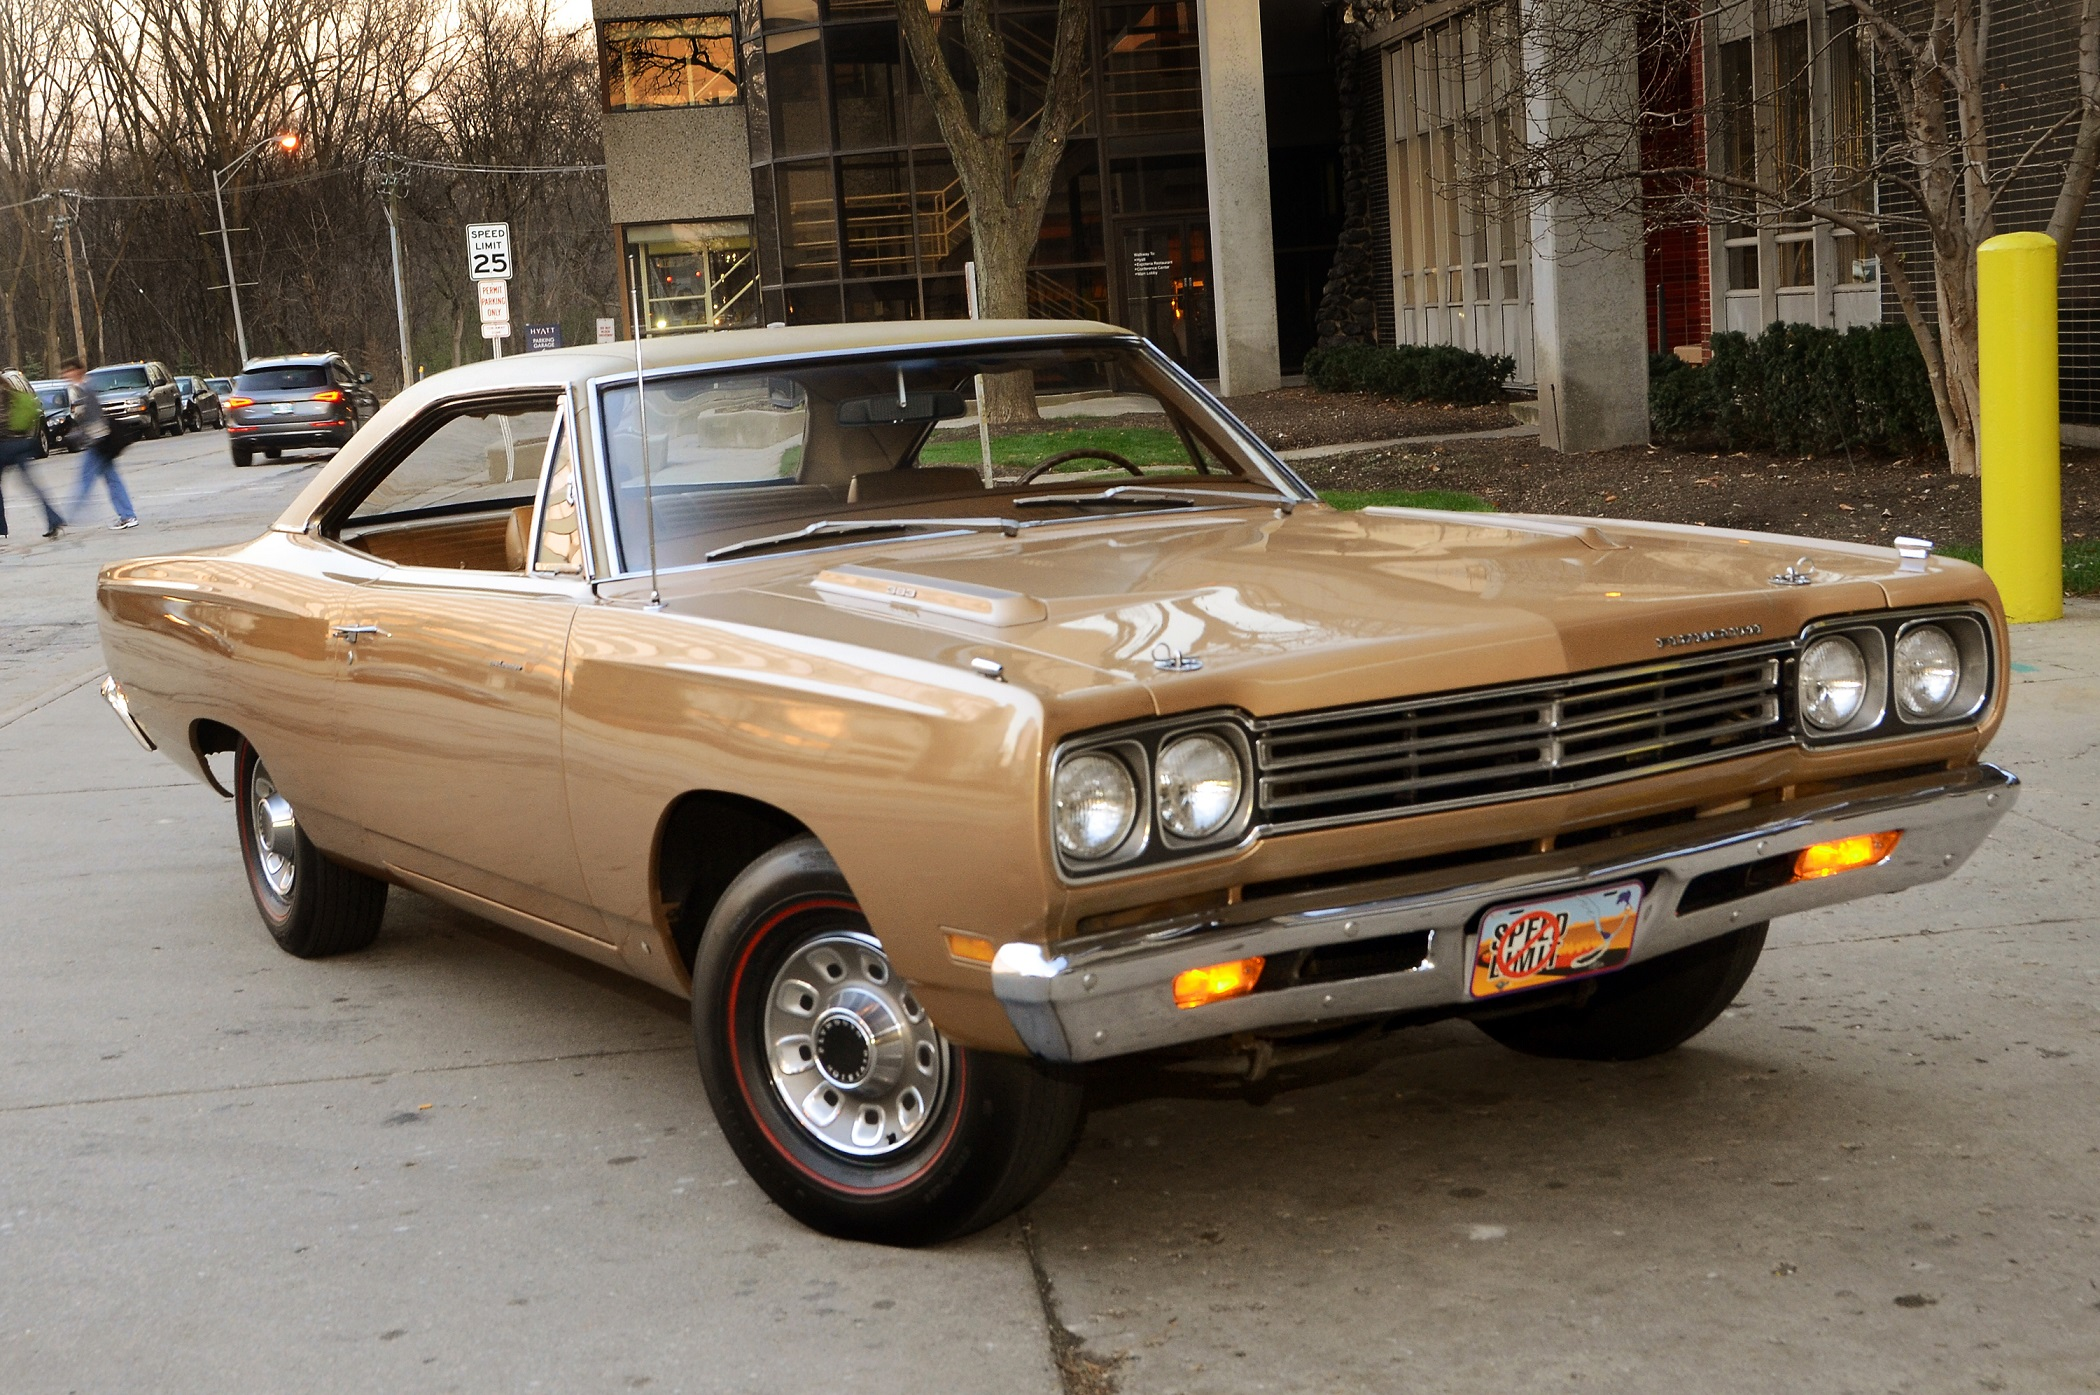 1969-plymouth-road-runner-front-passenger-side2[1] - Kopie.jpg